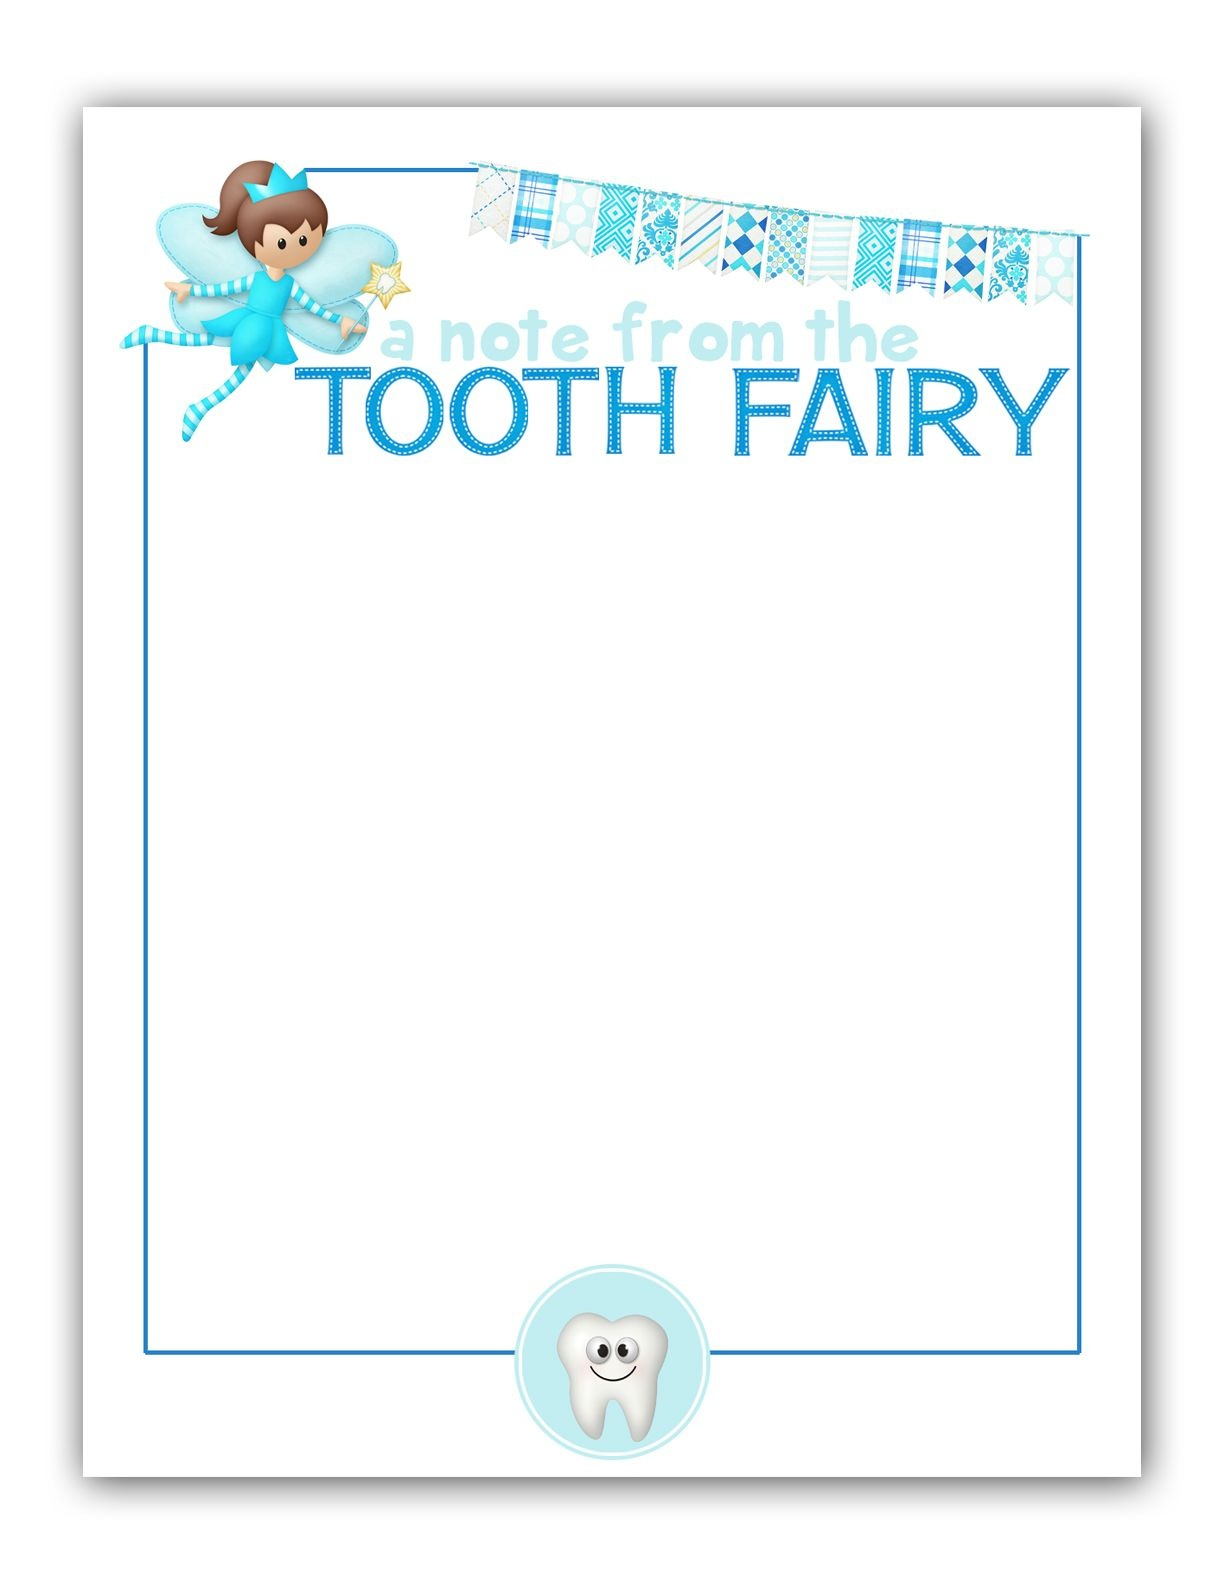 M|K Designs Blog: Tooth Fairy Stationary - Free Printable | Tooth - Tooth Fairy Stationery Free Printable